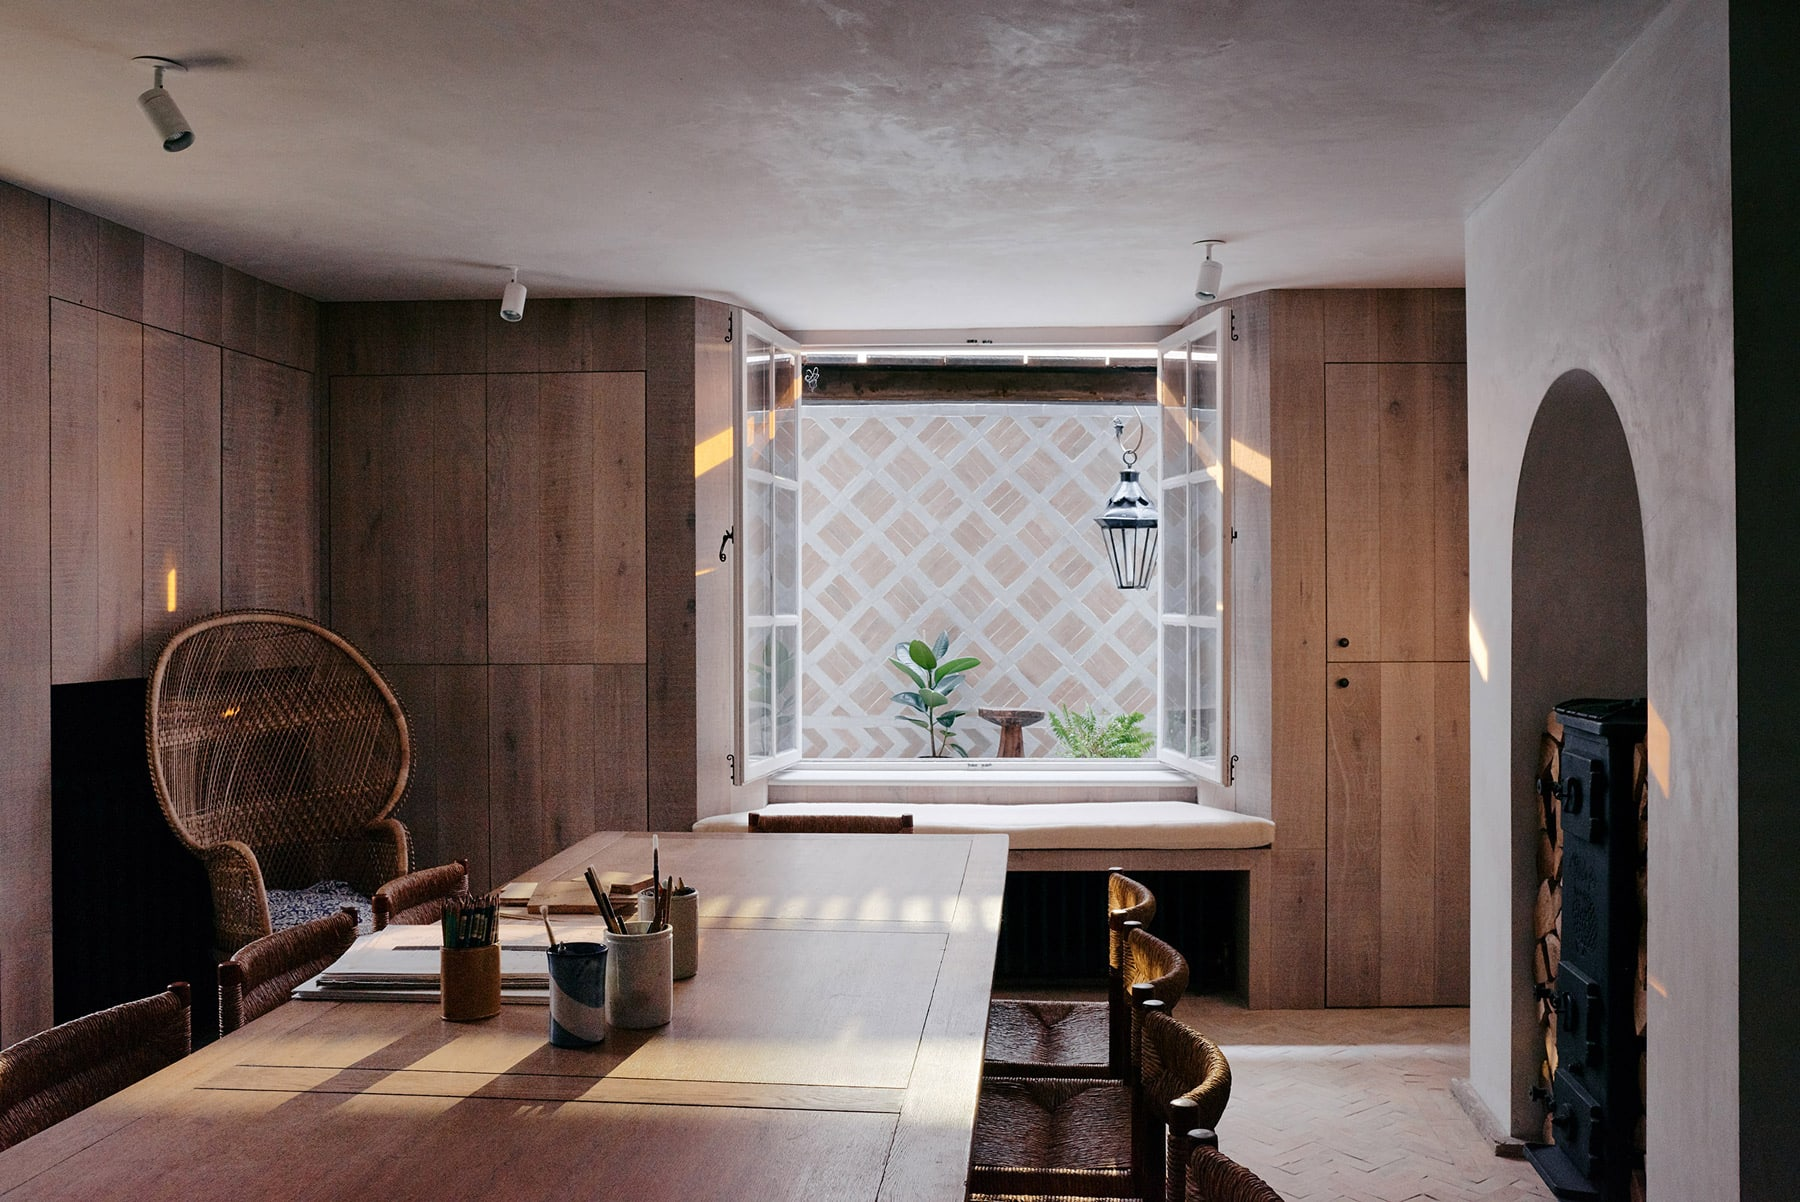 The Weavers House by Chan and Eayrs